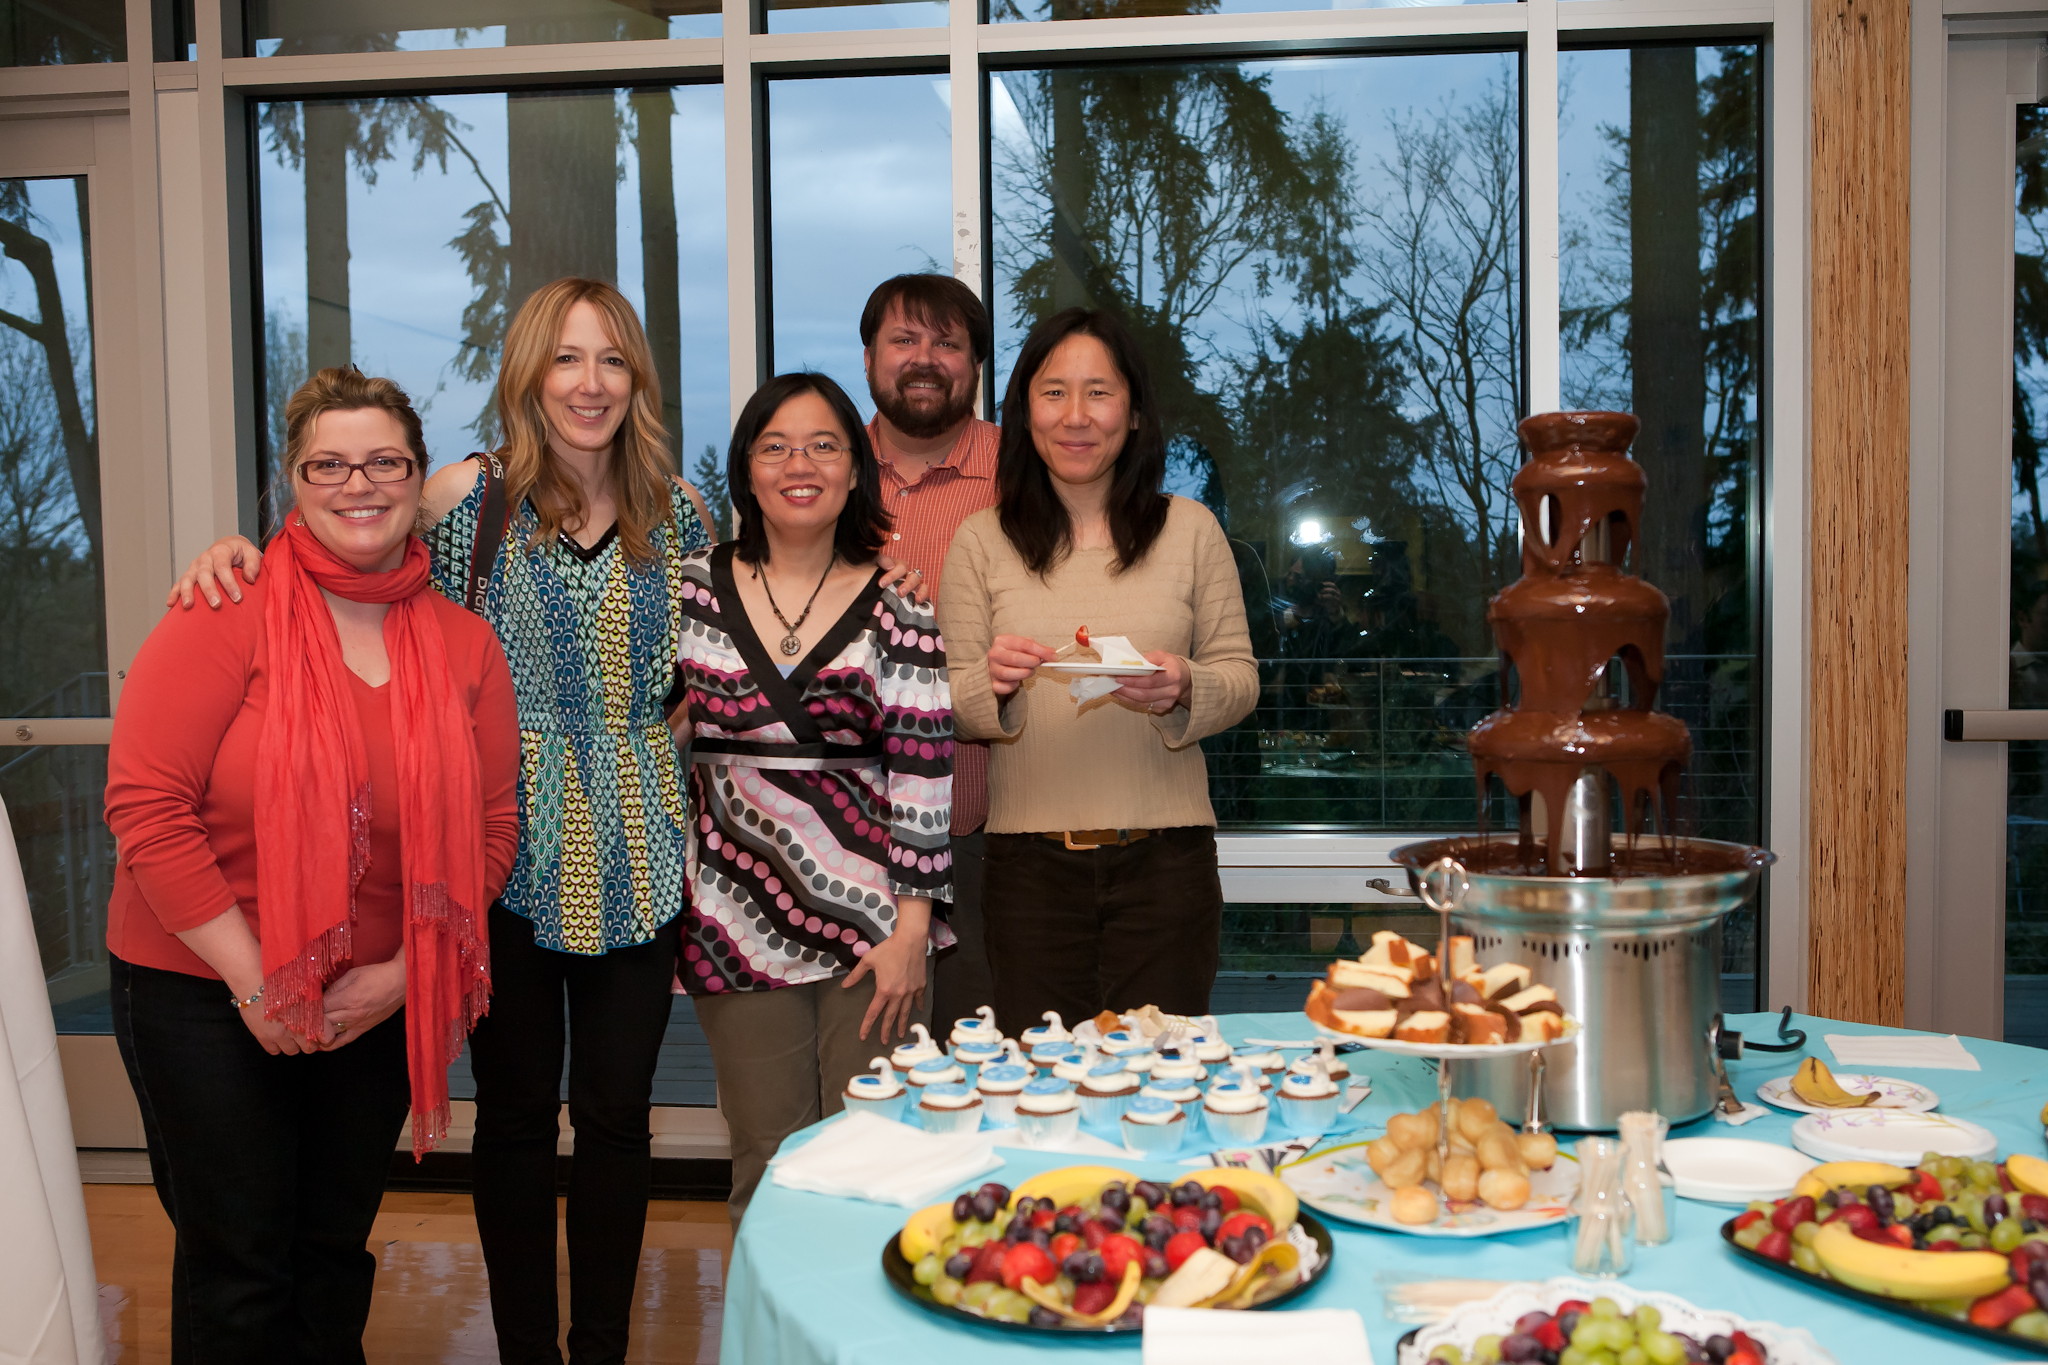 Some of the Board members (from left) Aimee F.,  Michele T., Wendy W., Sean C. and Yuko C.